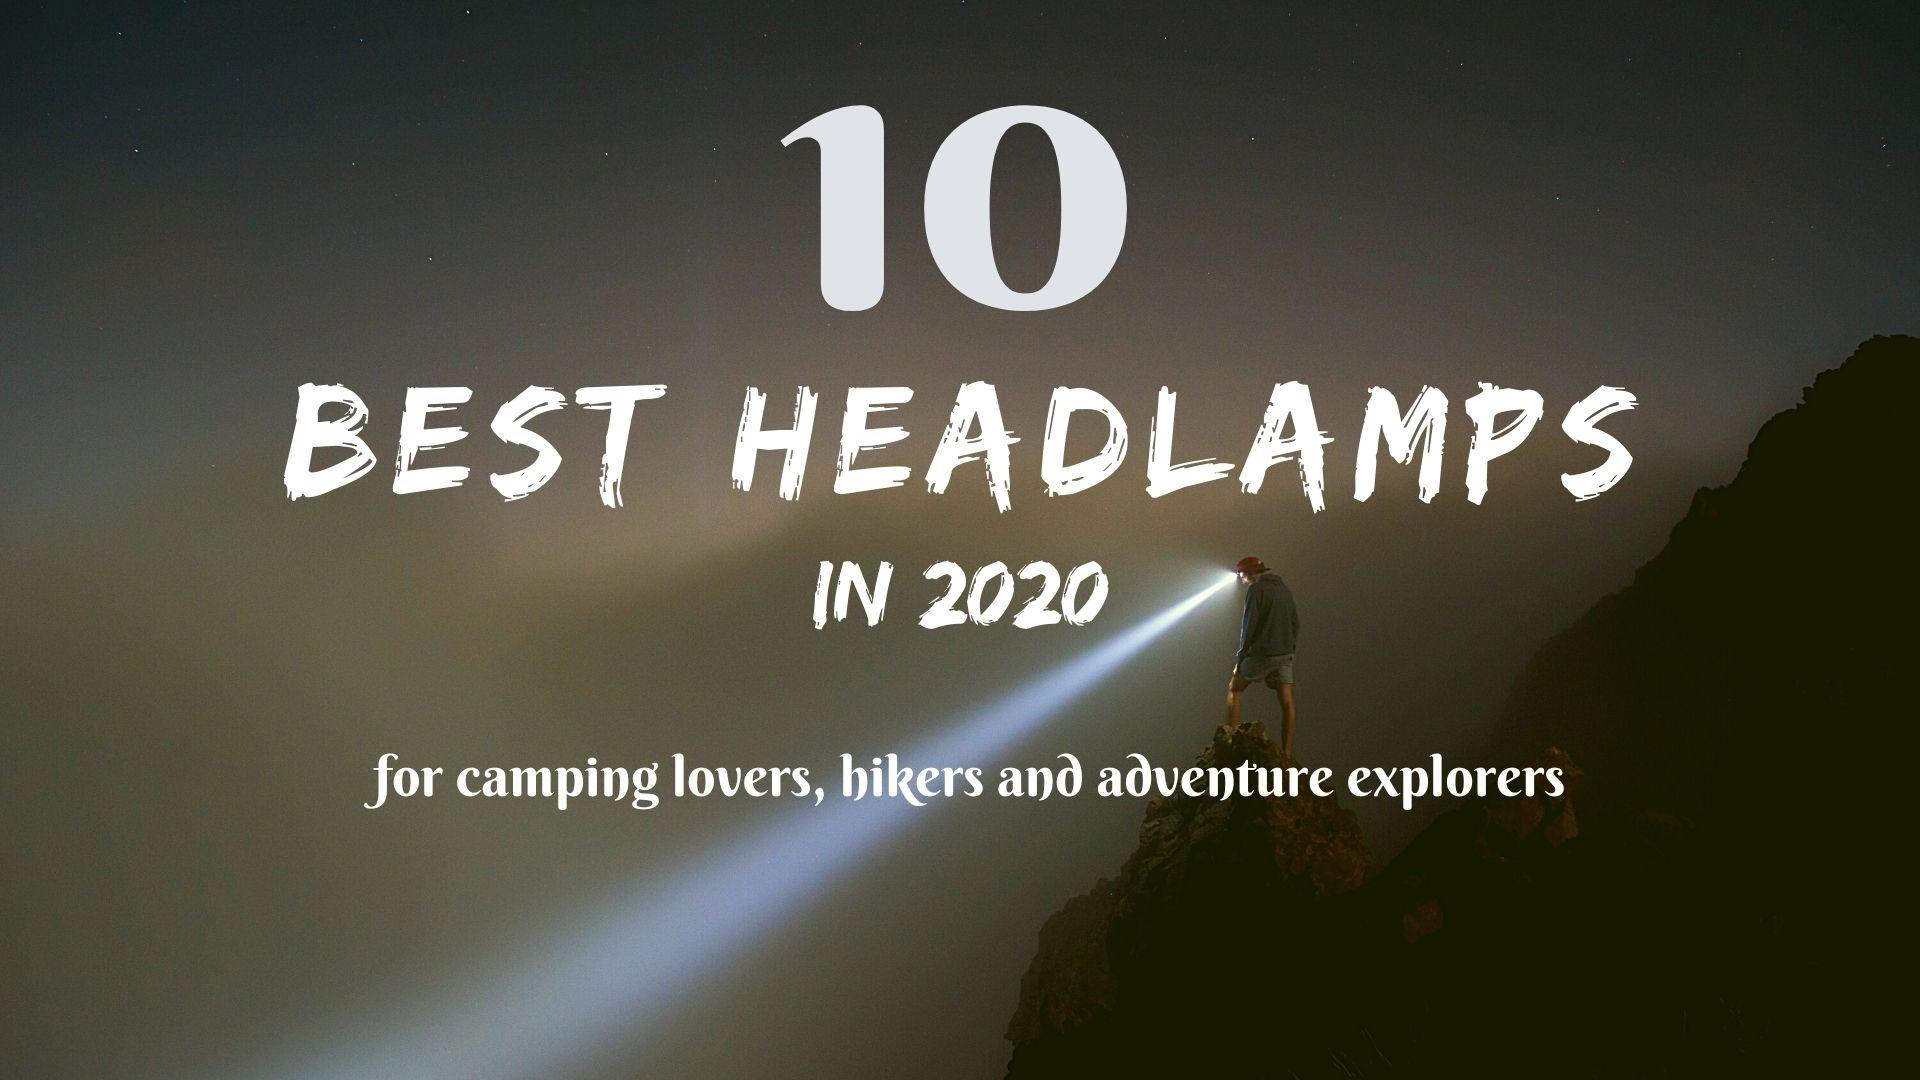 The 10 best headlamps in 2020 for camping lovers, hikers, and adventure explorers